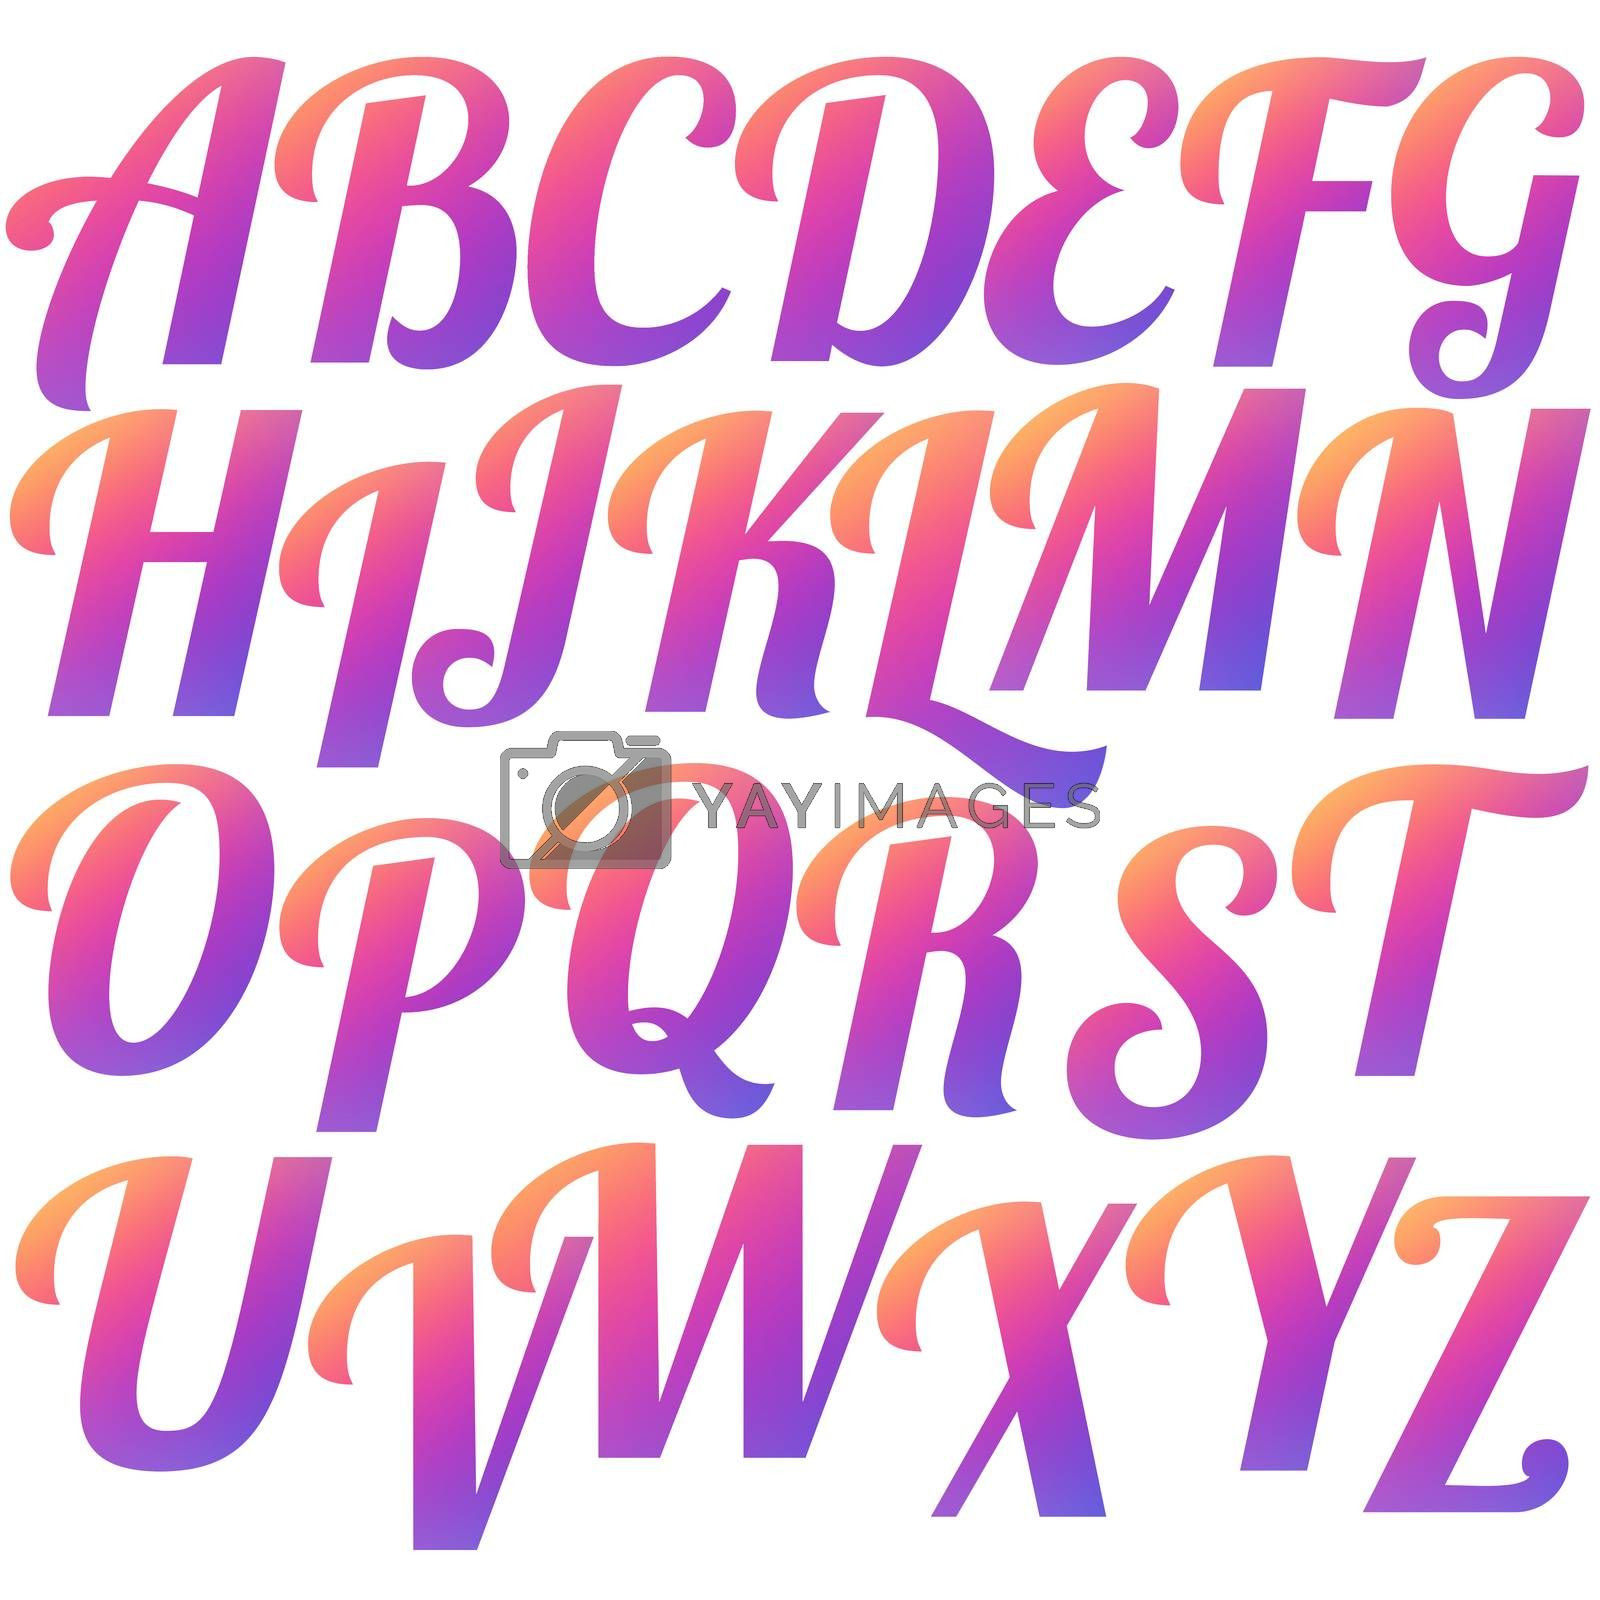 Set gradient capital letters in social media colors. Isolated alphabet symbols on white background. Stock illustration.